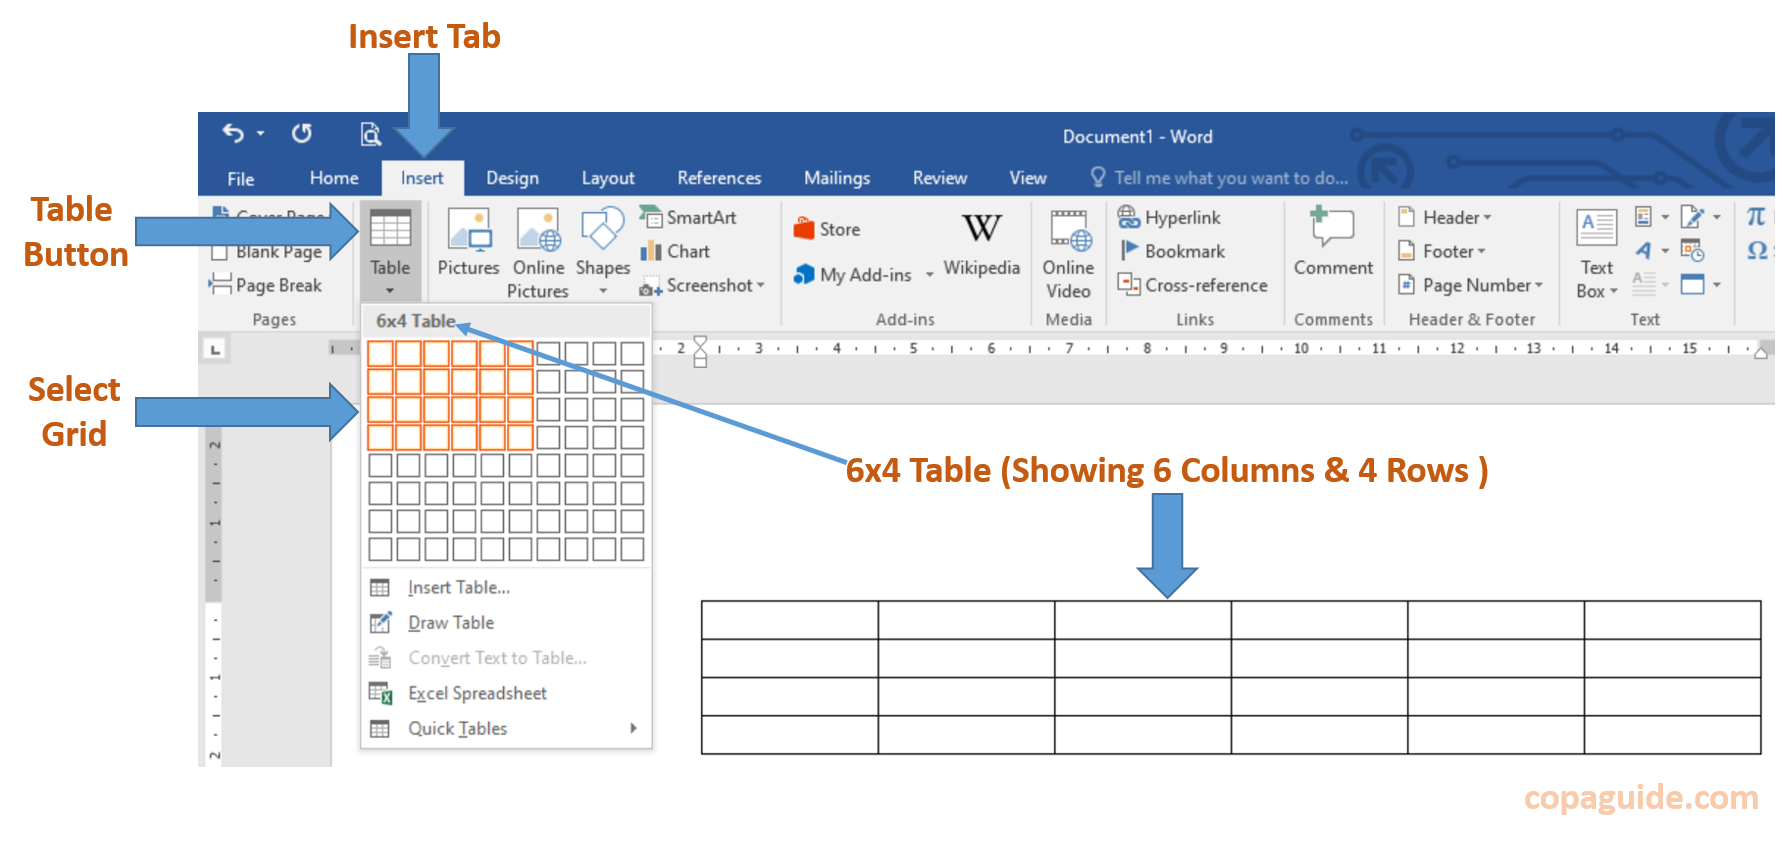 Microsoft Word - Using Graphic Grid to Insert Table Hindi Notes